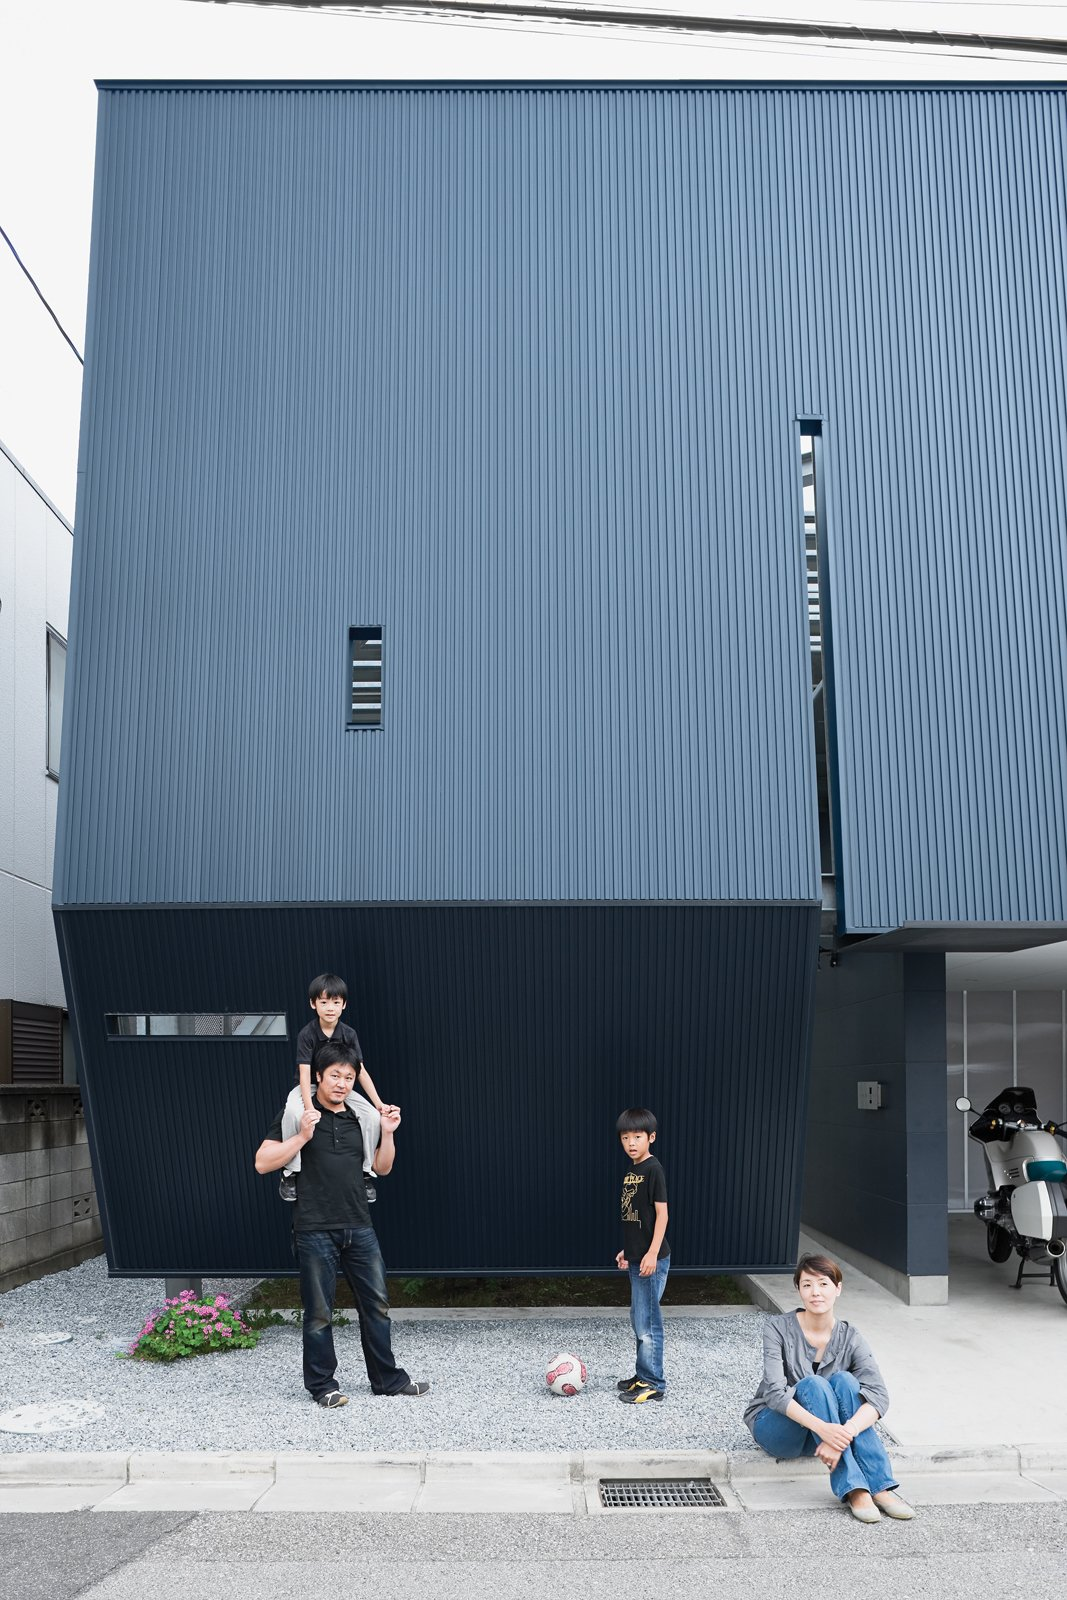 Articles about glowing box home japan on Dwell.com